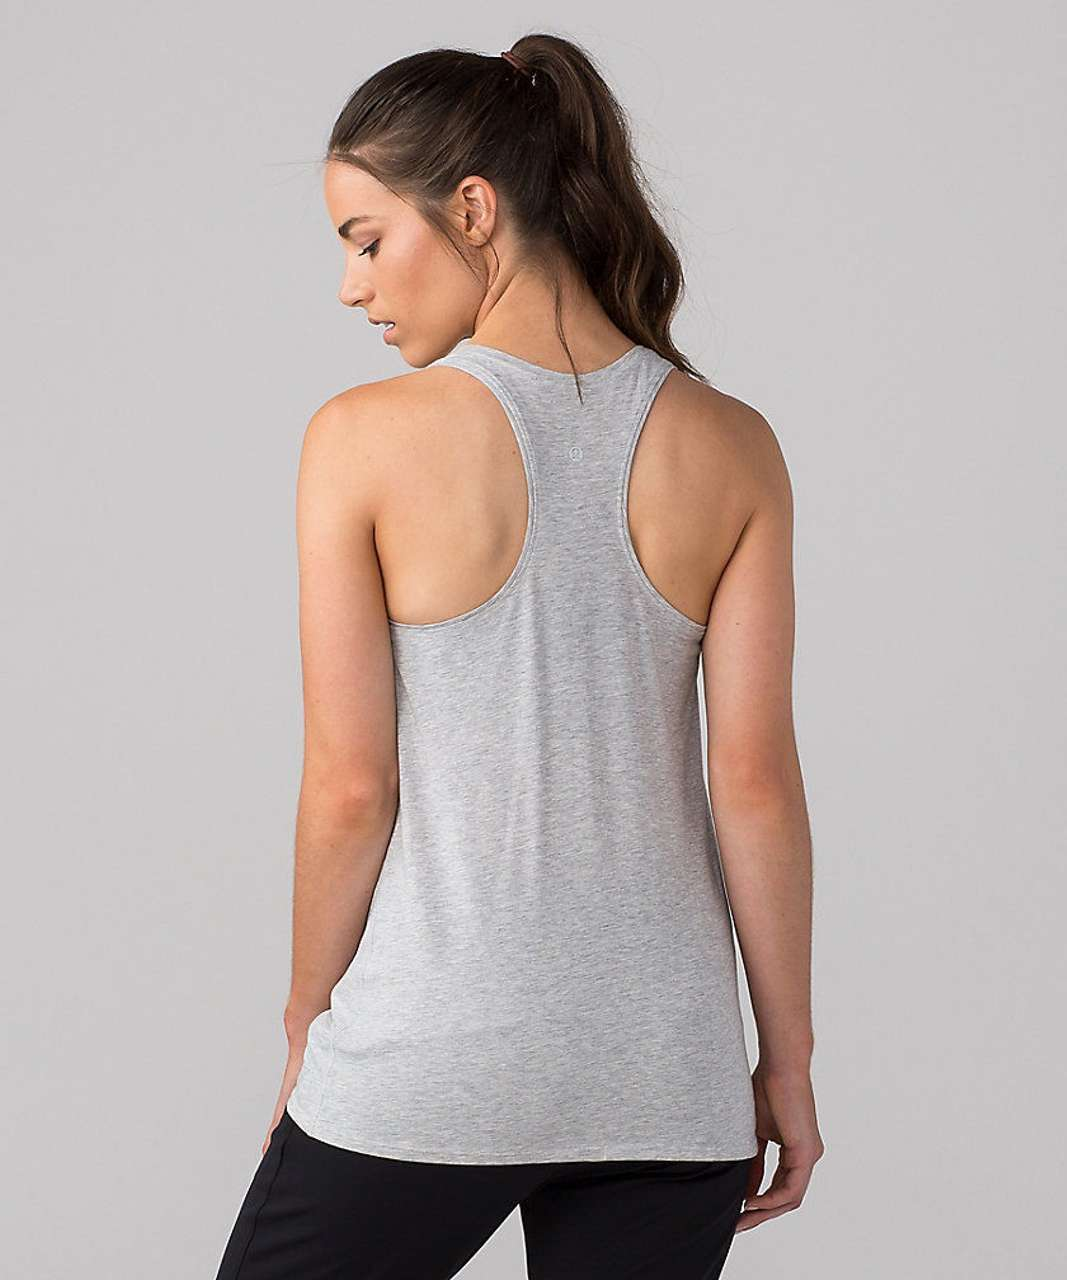 Lululemon Love Tank *Solidarité - Heathered Vapor